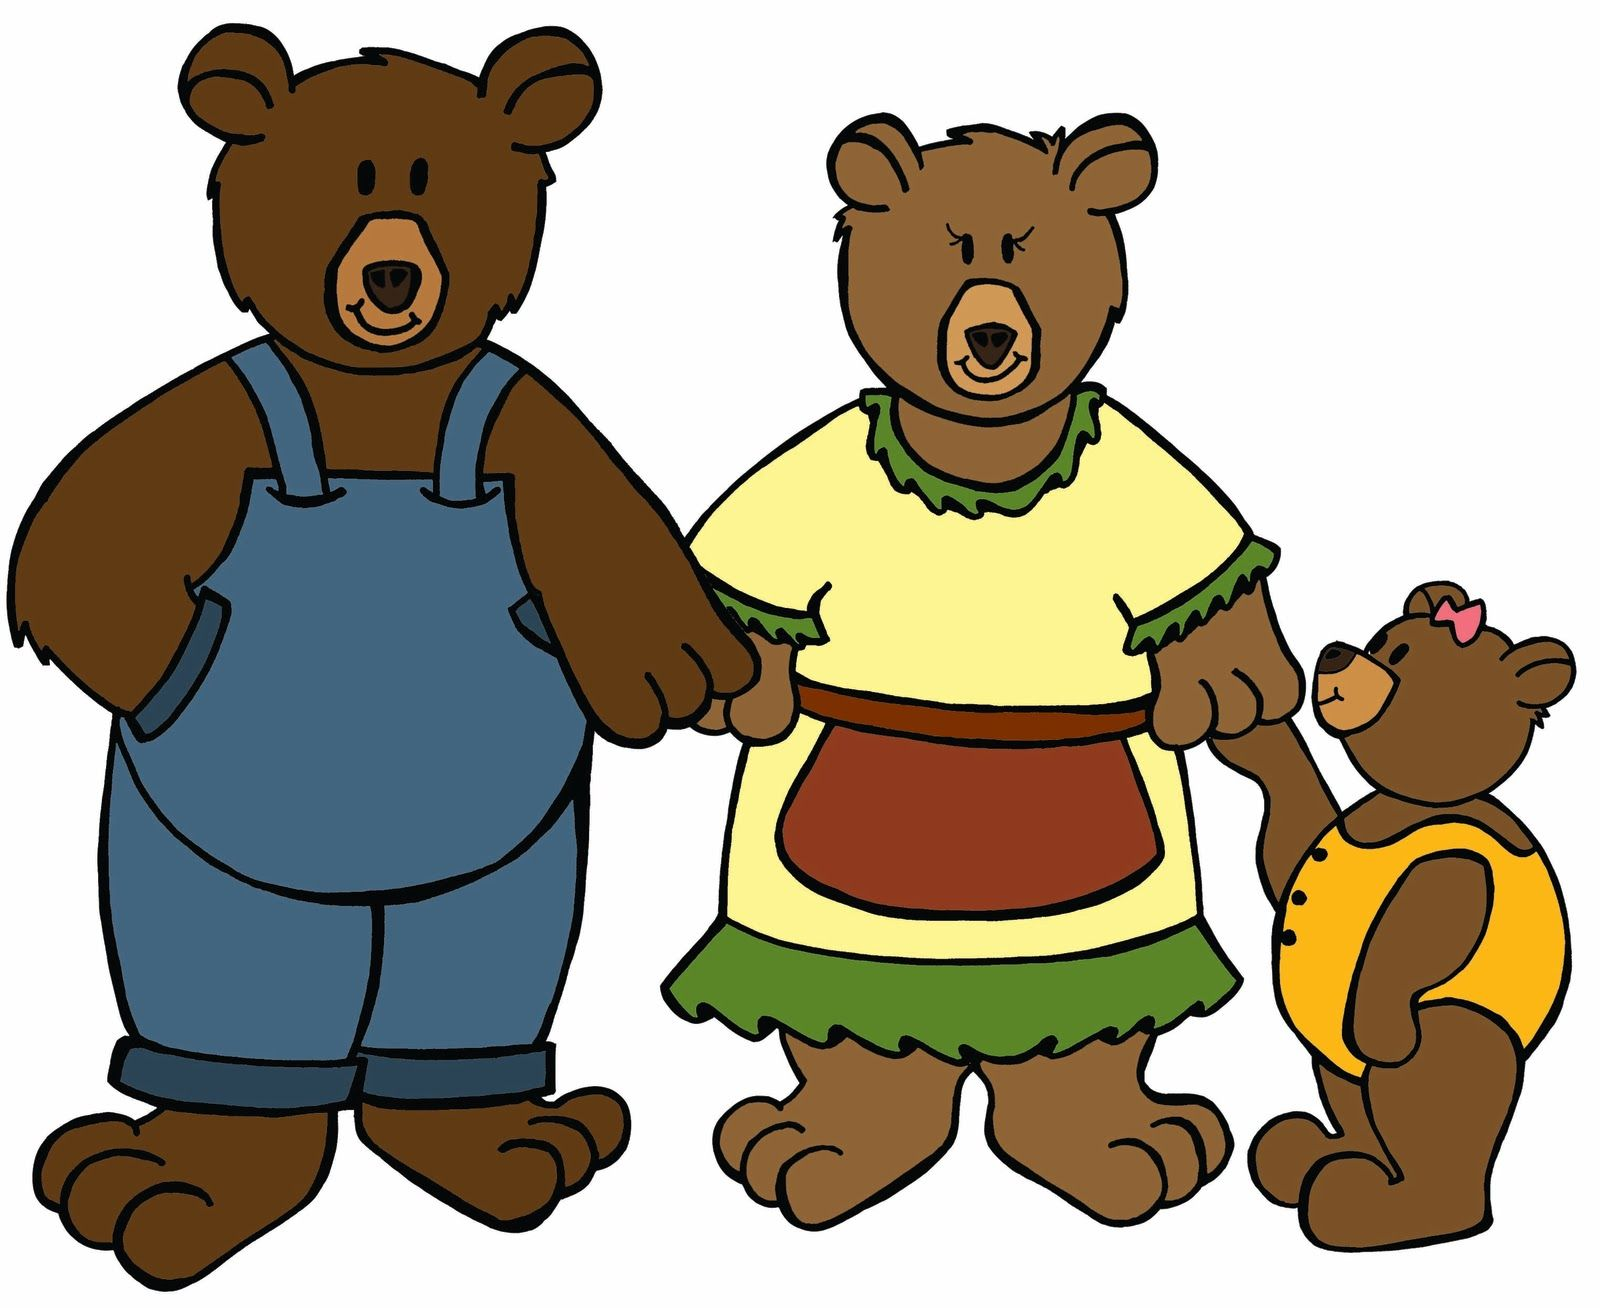 bear pictures clip art google pretra ivanje djed i dje ak u rh pinterest co uk goldilocks and the 3 bears clipart